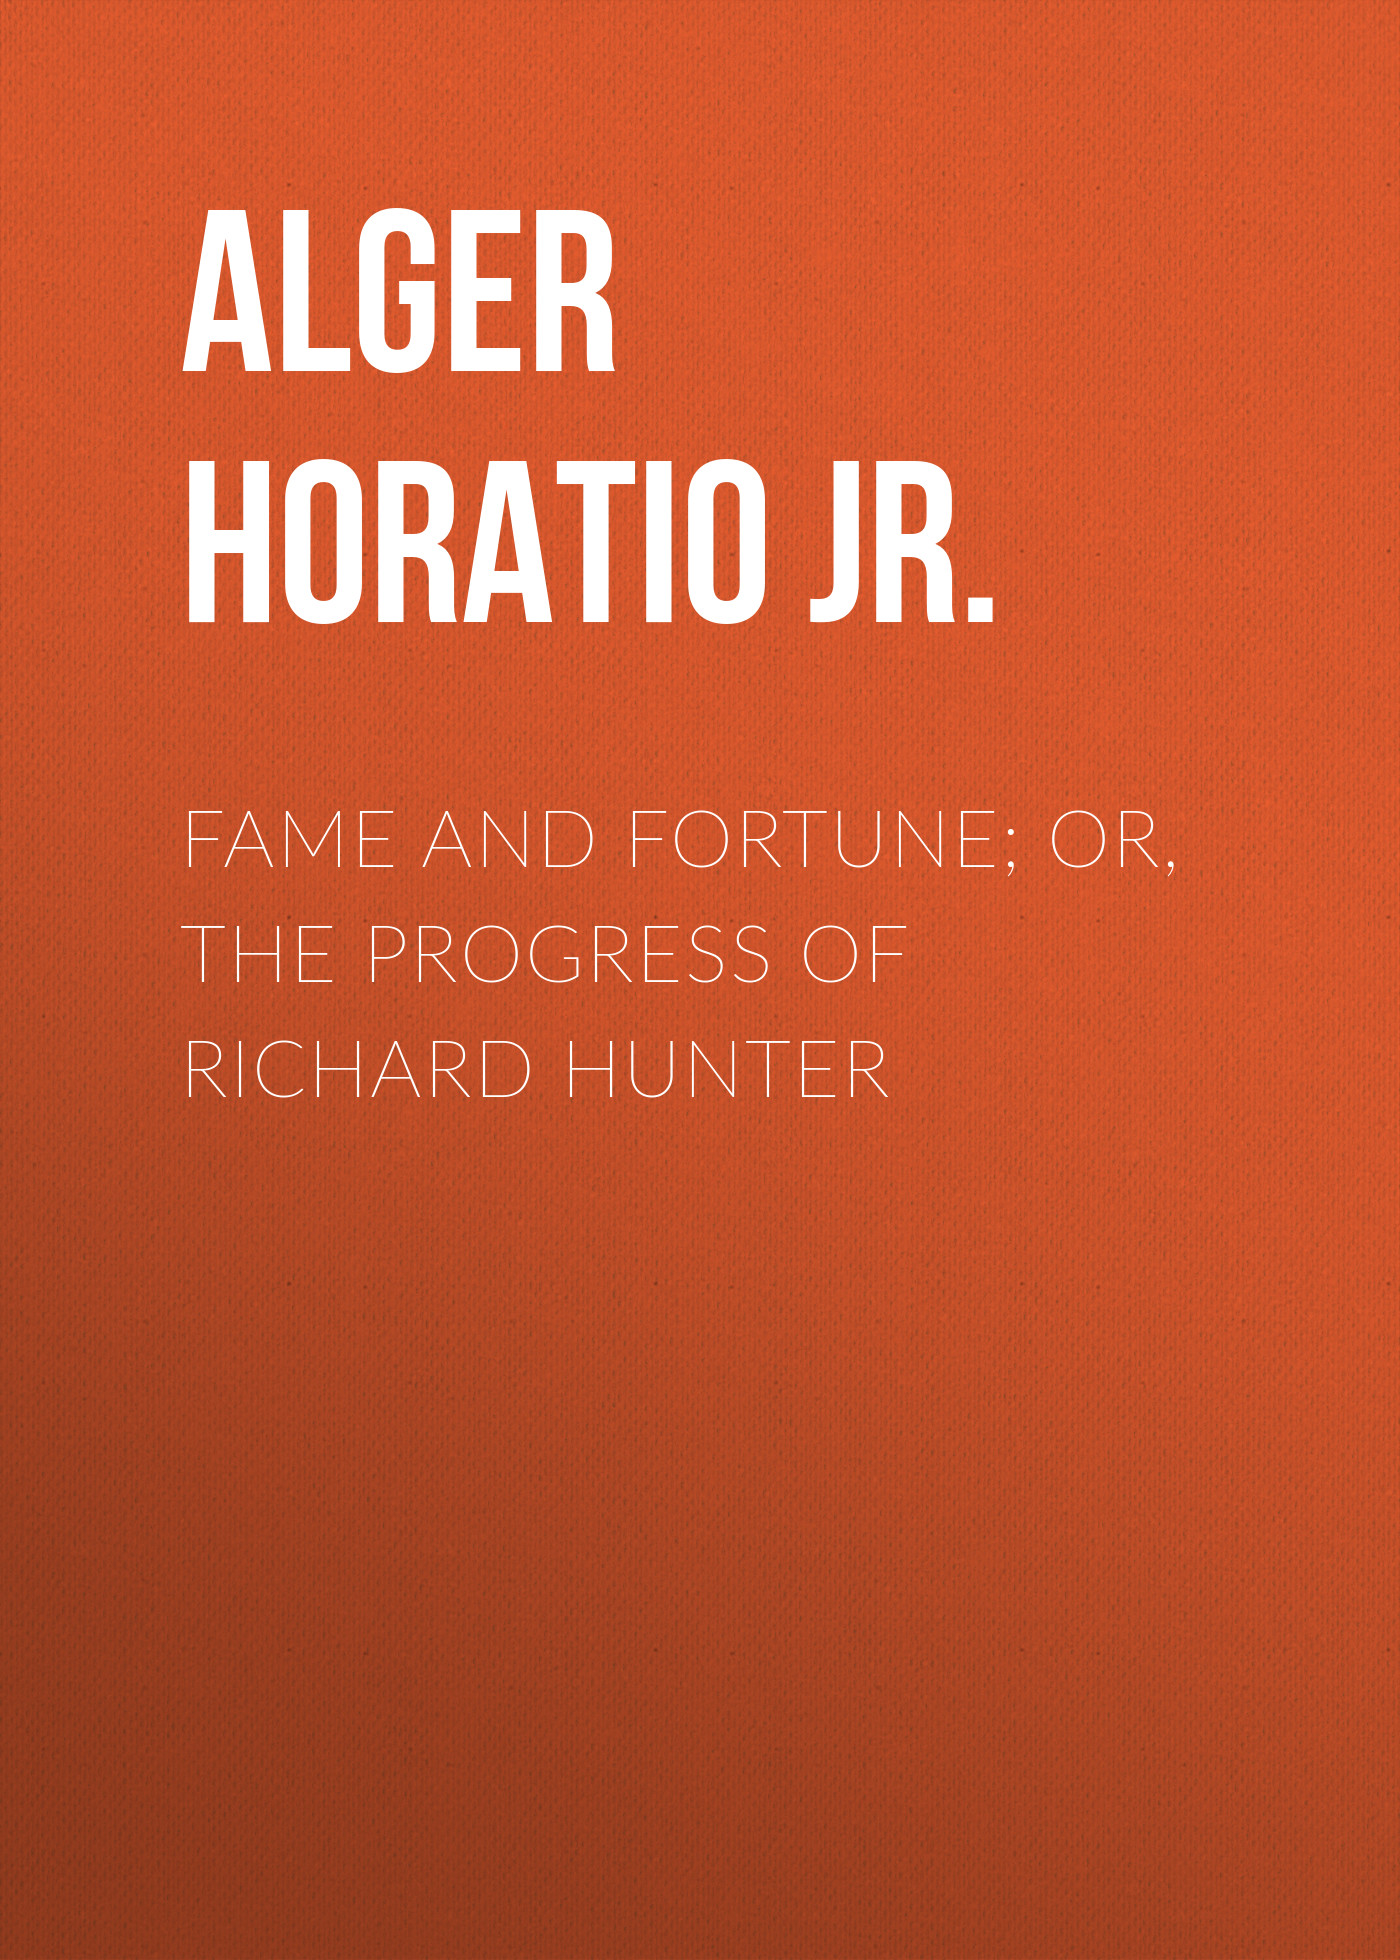 Alger Horatio Jr. Fame and Fortune; or, The Progress of Richard Hunter alger horatio jr risen from the ranks or harry walton s success